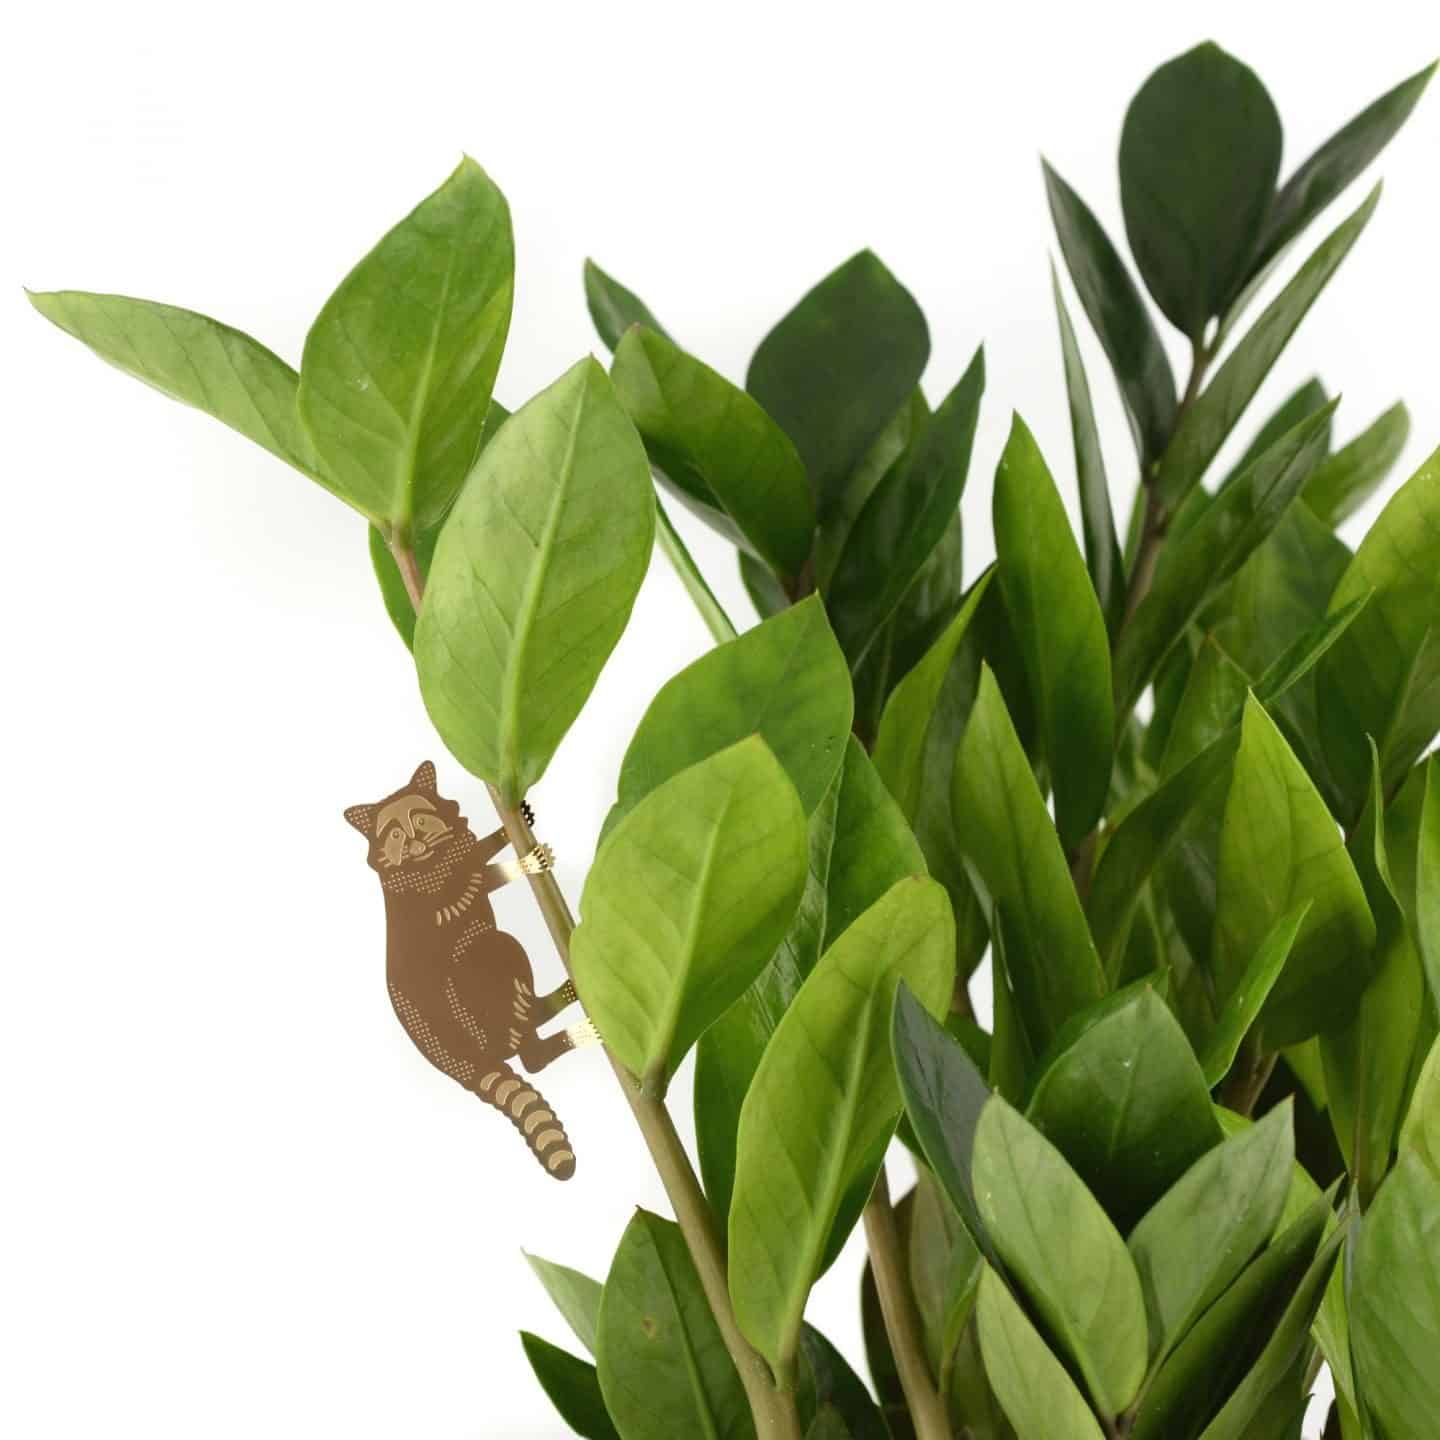 Gifts for plant lovers. These brass animal decorations from Another Studio can be hung on trees and plants